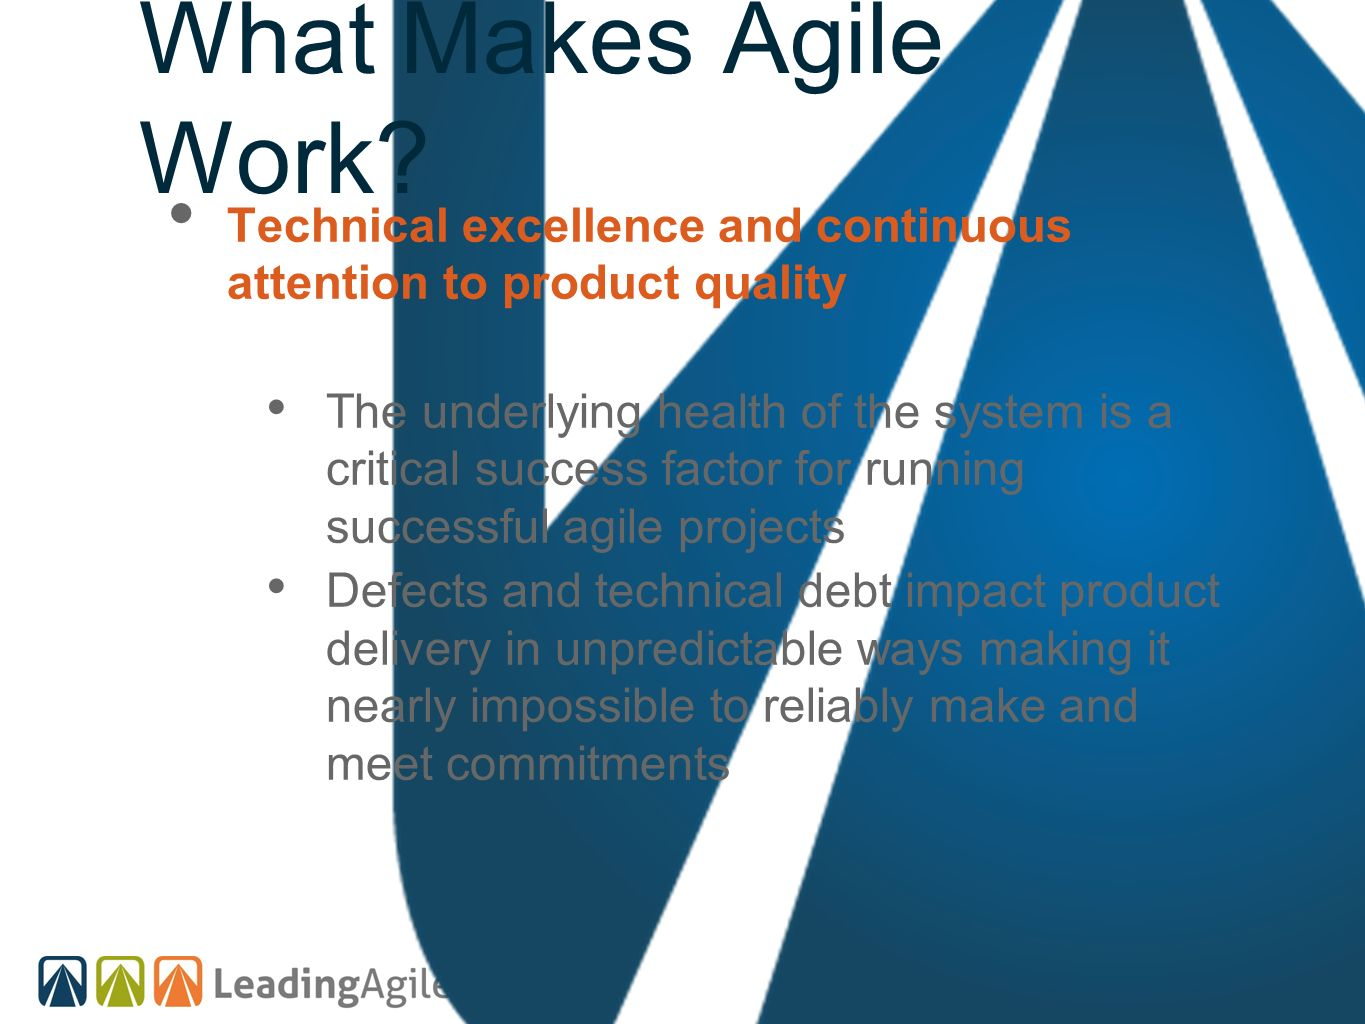 What Makes Agile Work Technical excellence and continuous attention to product quality.